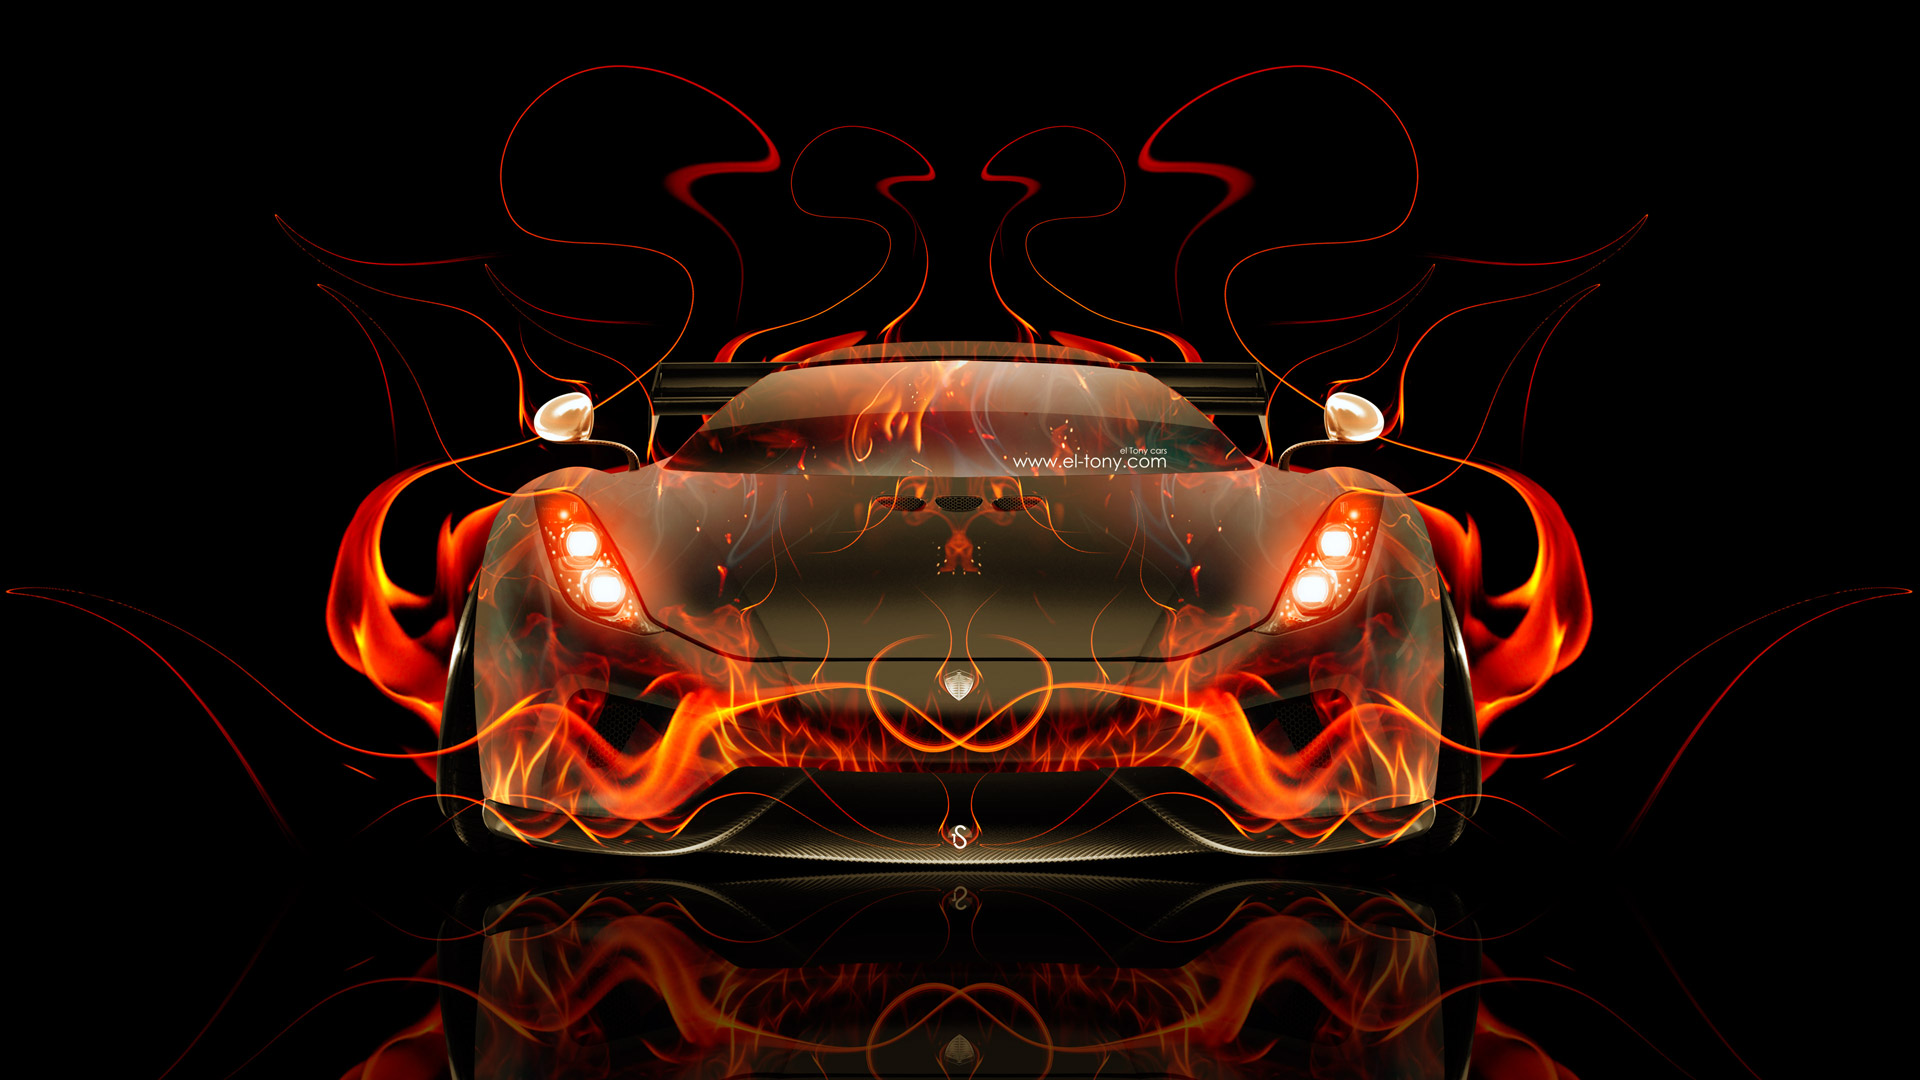 Koenigsegg Regera Front Fire Abstract Car 2015 El Tony